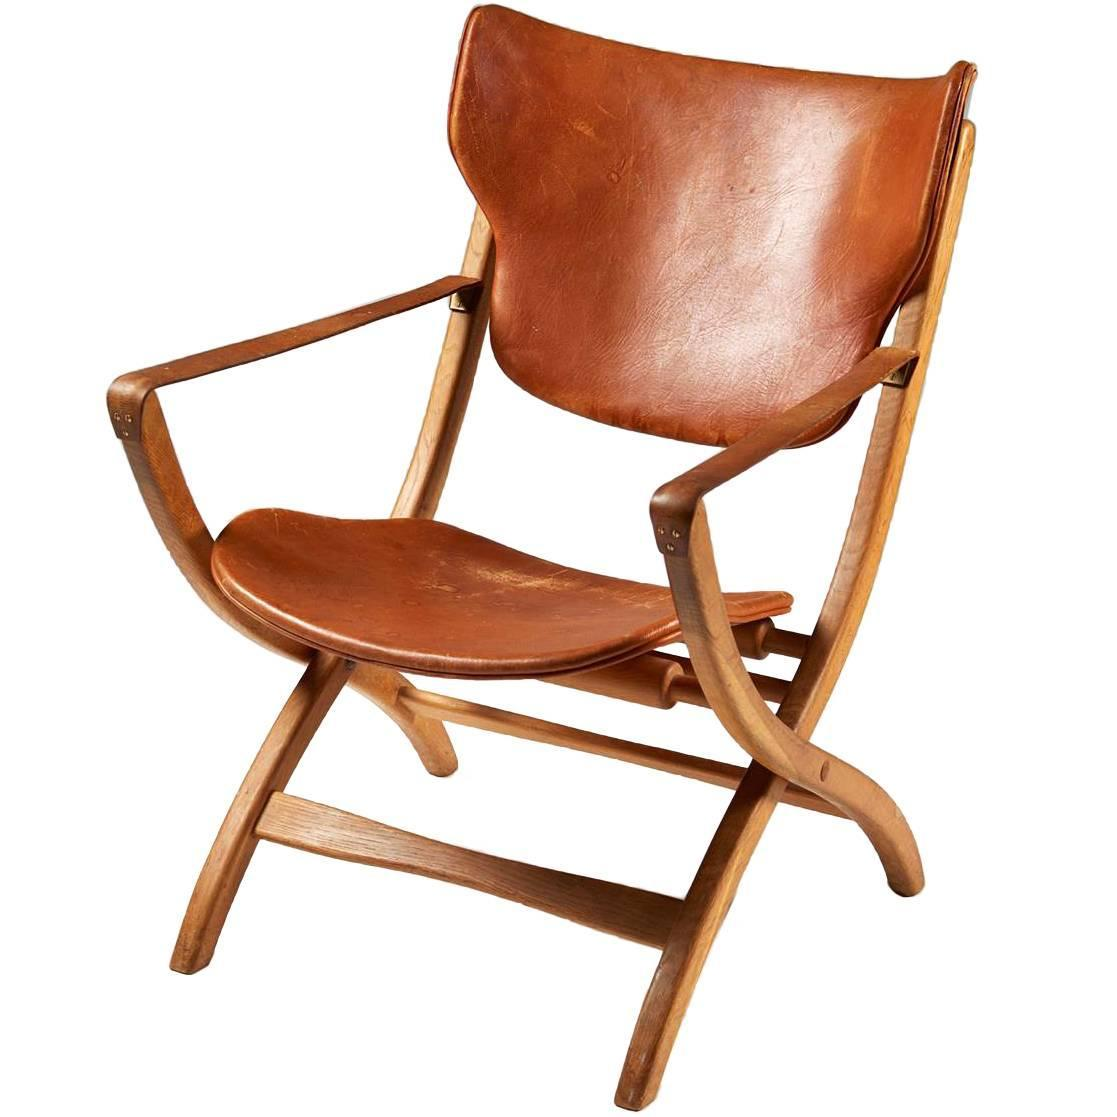 Folding Armchair U201cEgyptian Chairu201d Designed By Poul Hundevad, Denmark, 1950s  For Sale At 1stdibs